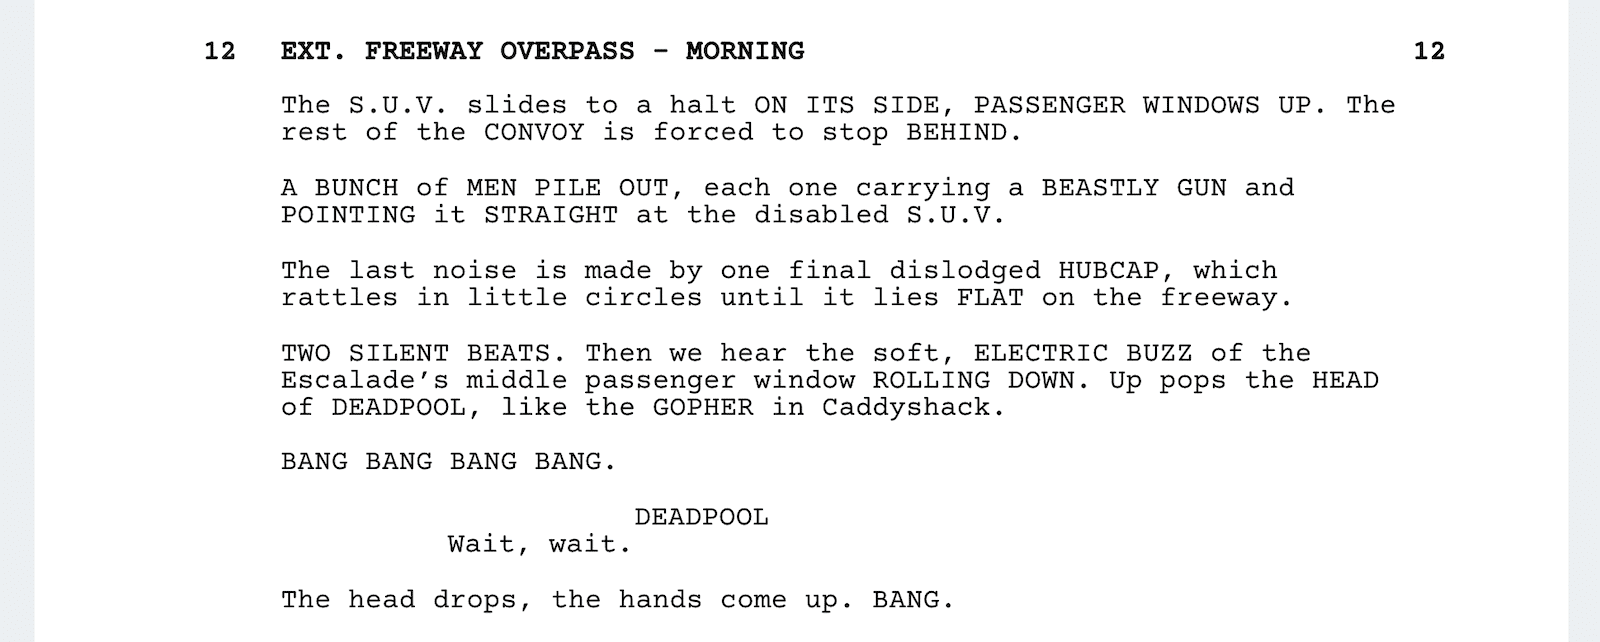 Deadpool Script Teardown - Bridge Scene - StudioBinder